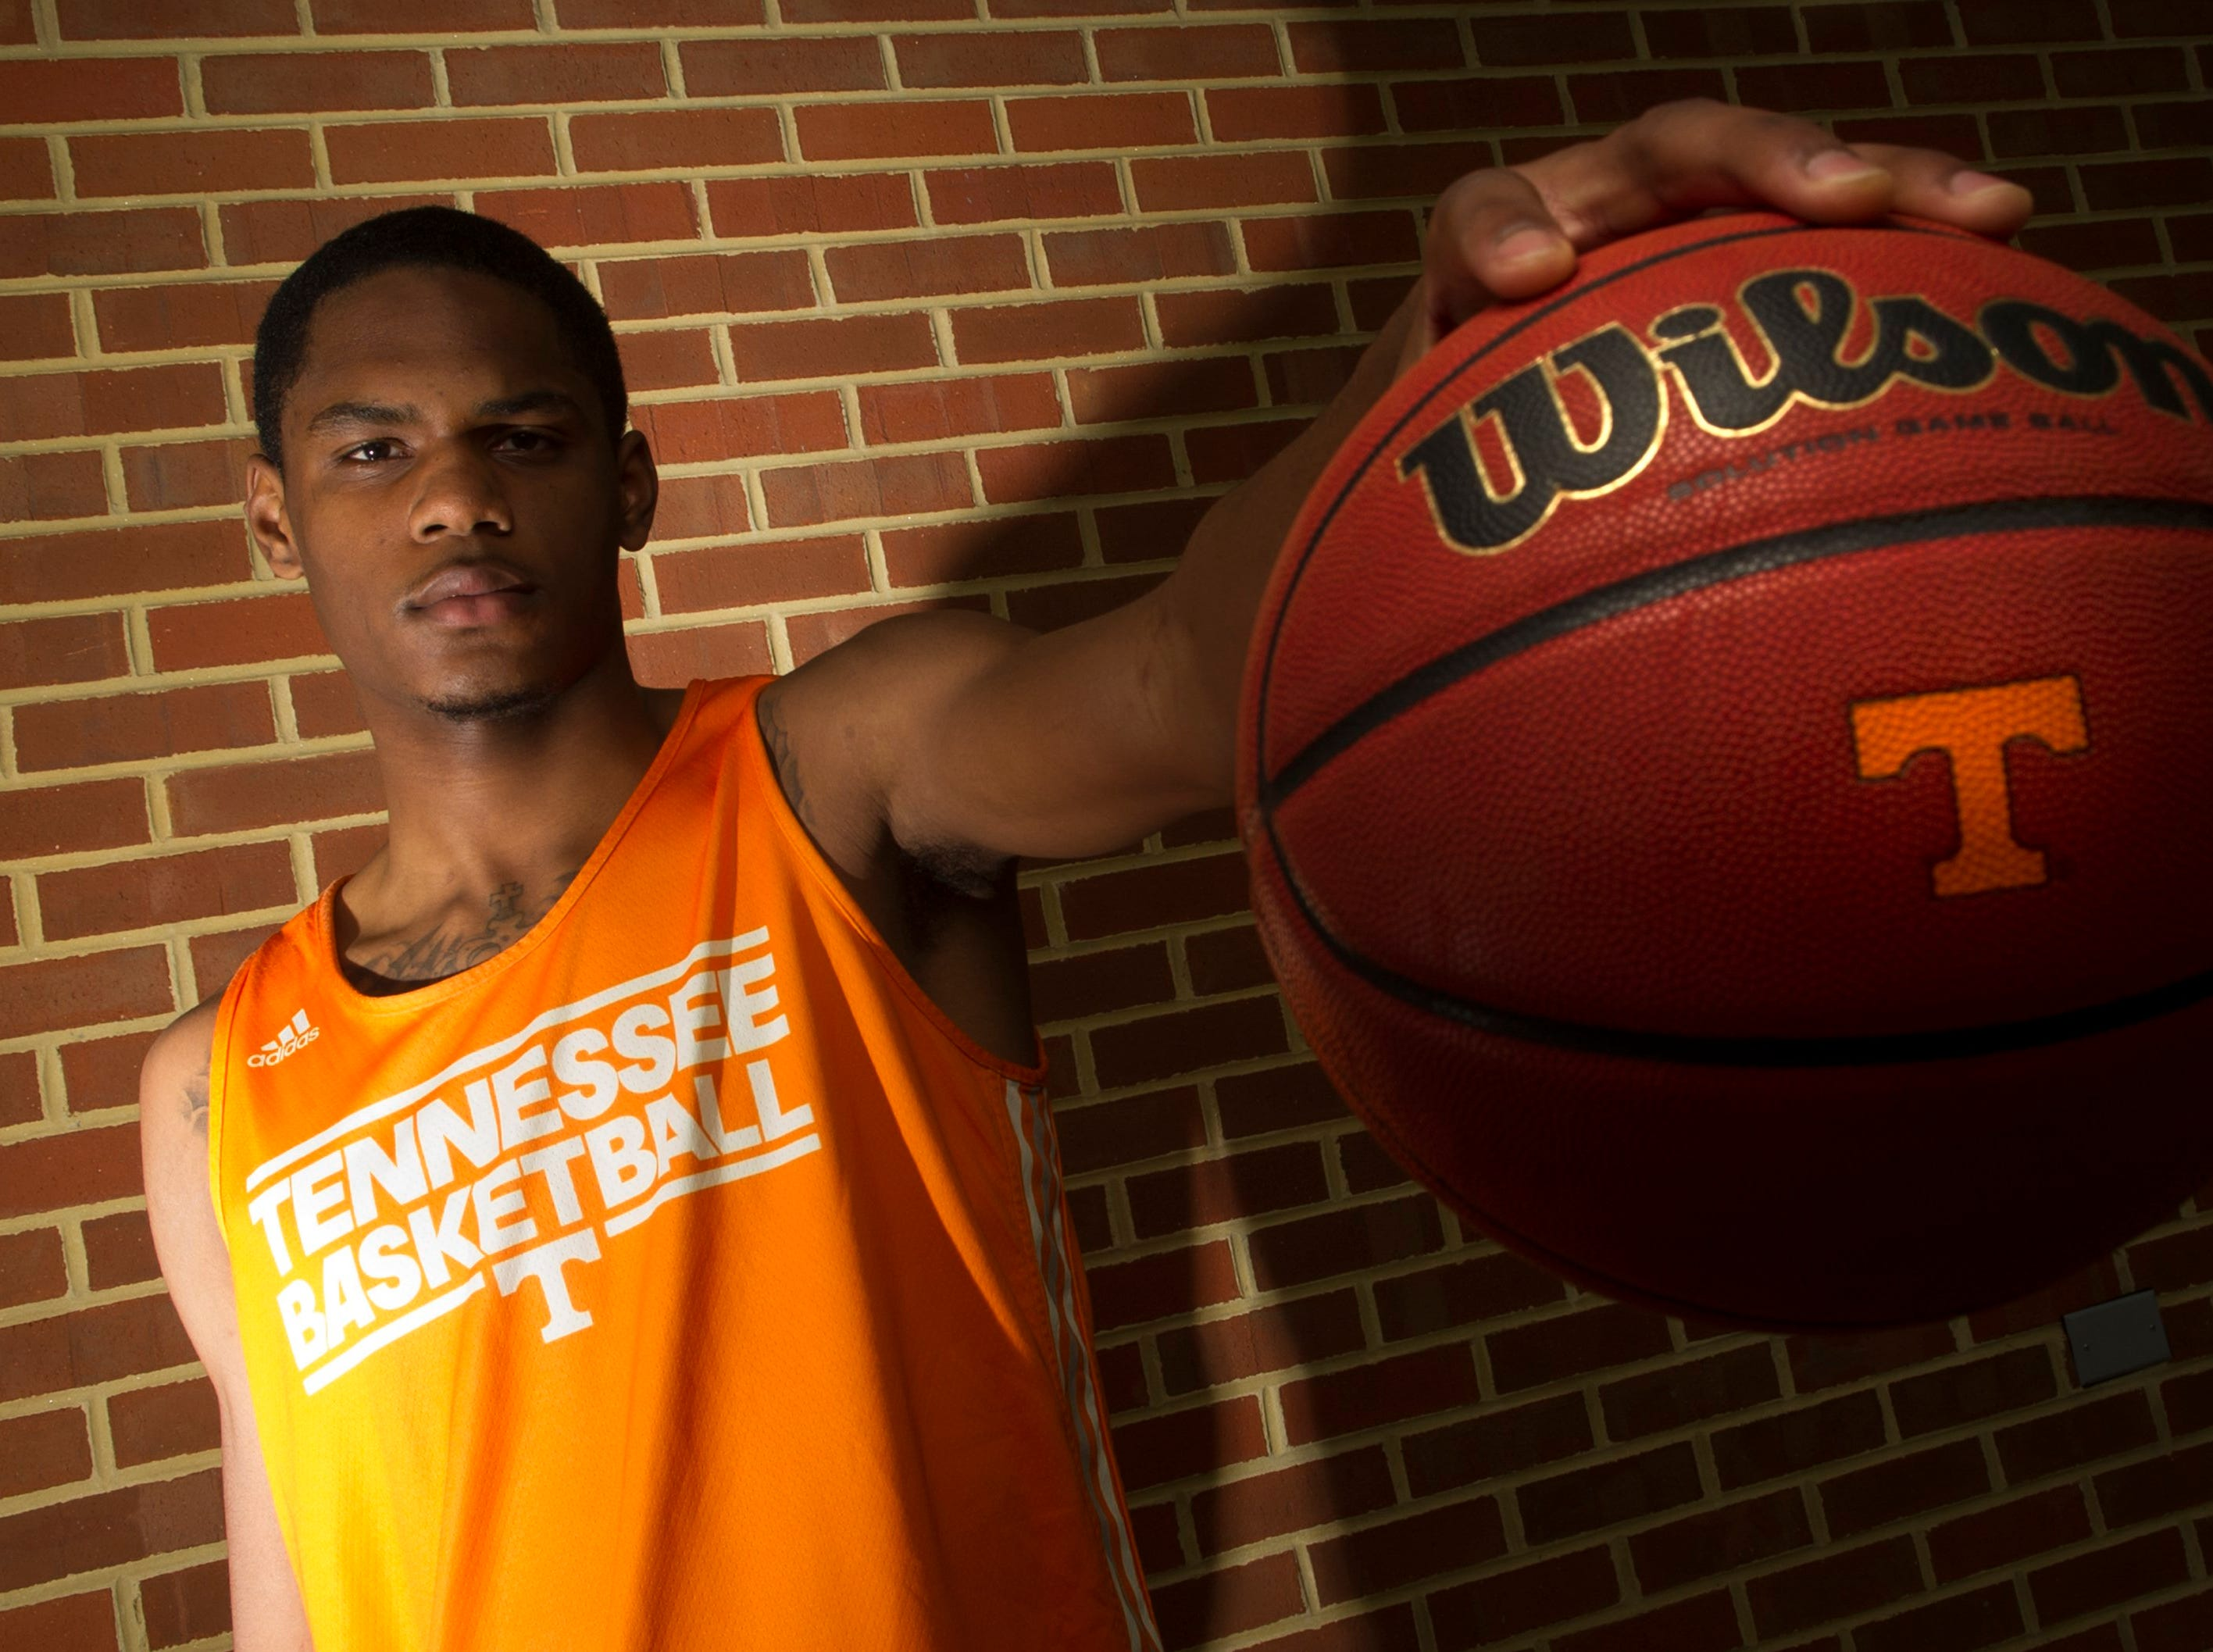 Freshman basketball player A. J. Davis poses for a portrait at University of Tennessee's Pratt Pavillion in Knoxville on Thursday, Oct. 24, 2013.